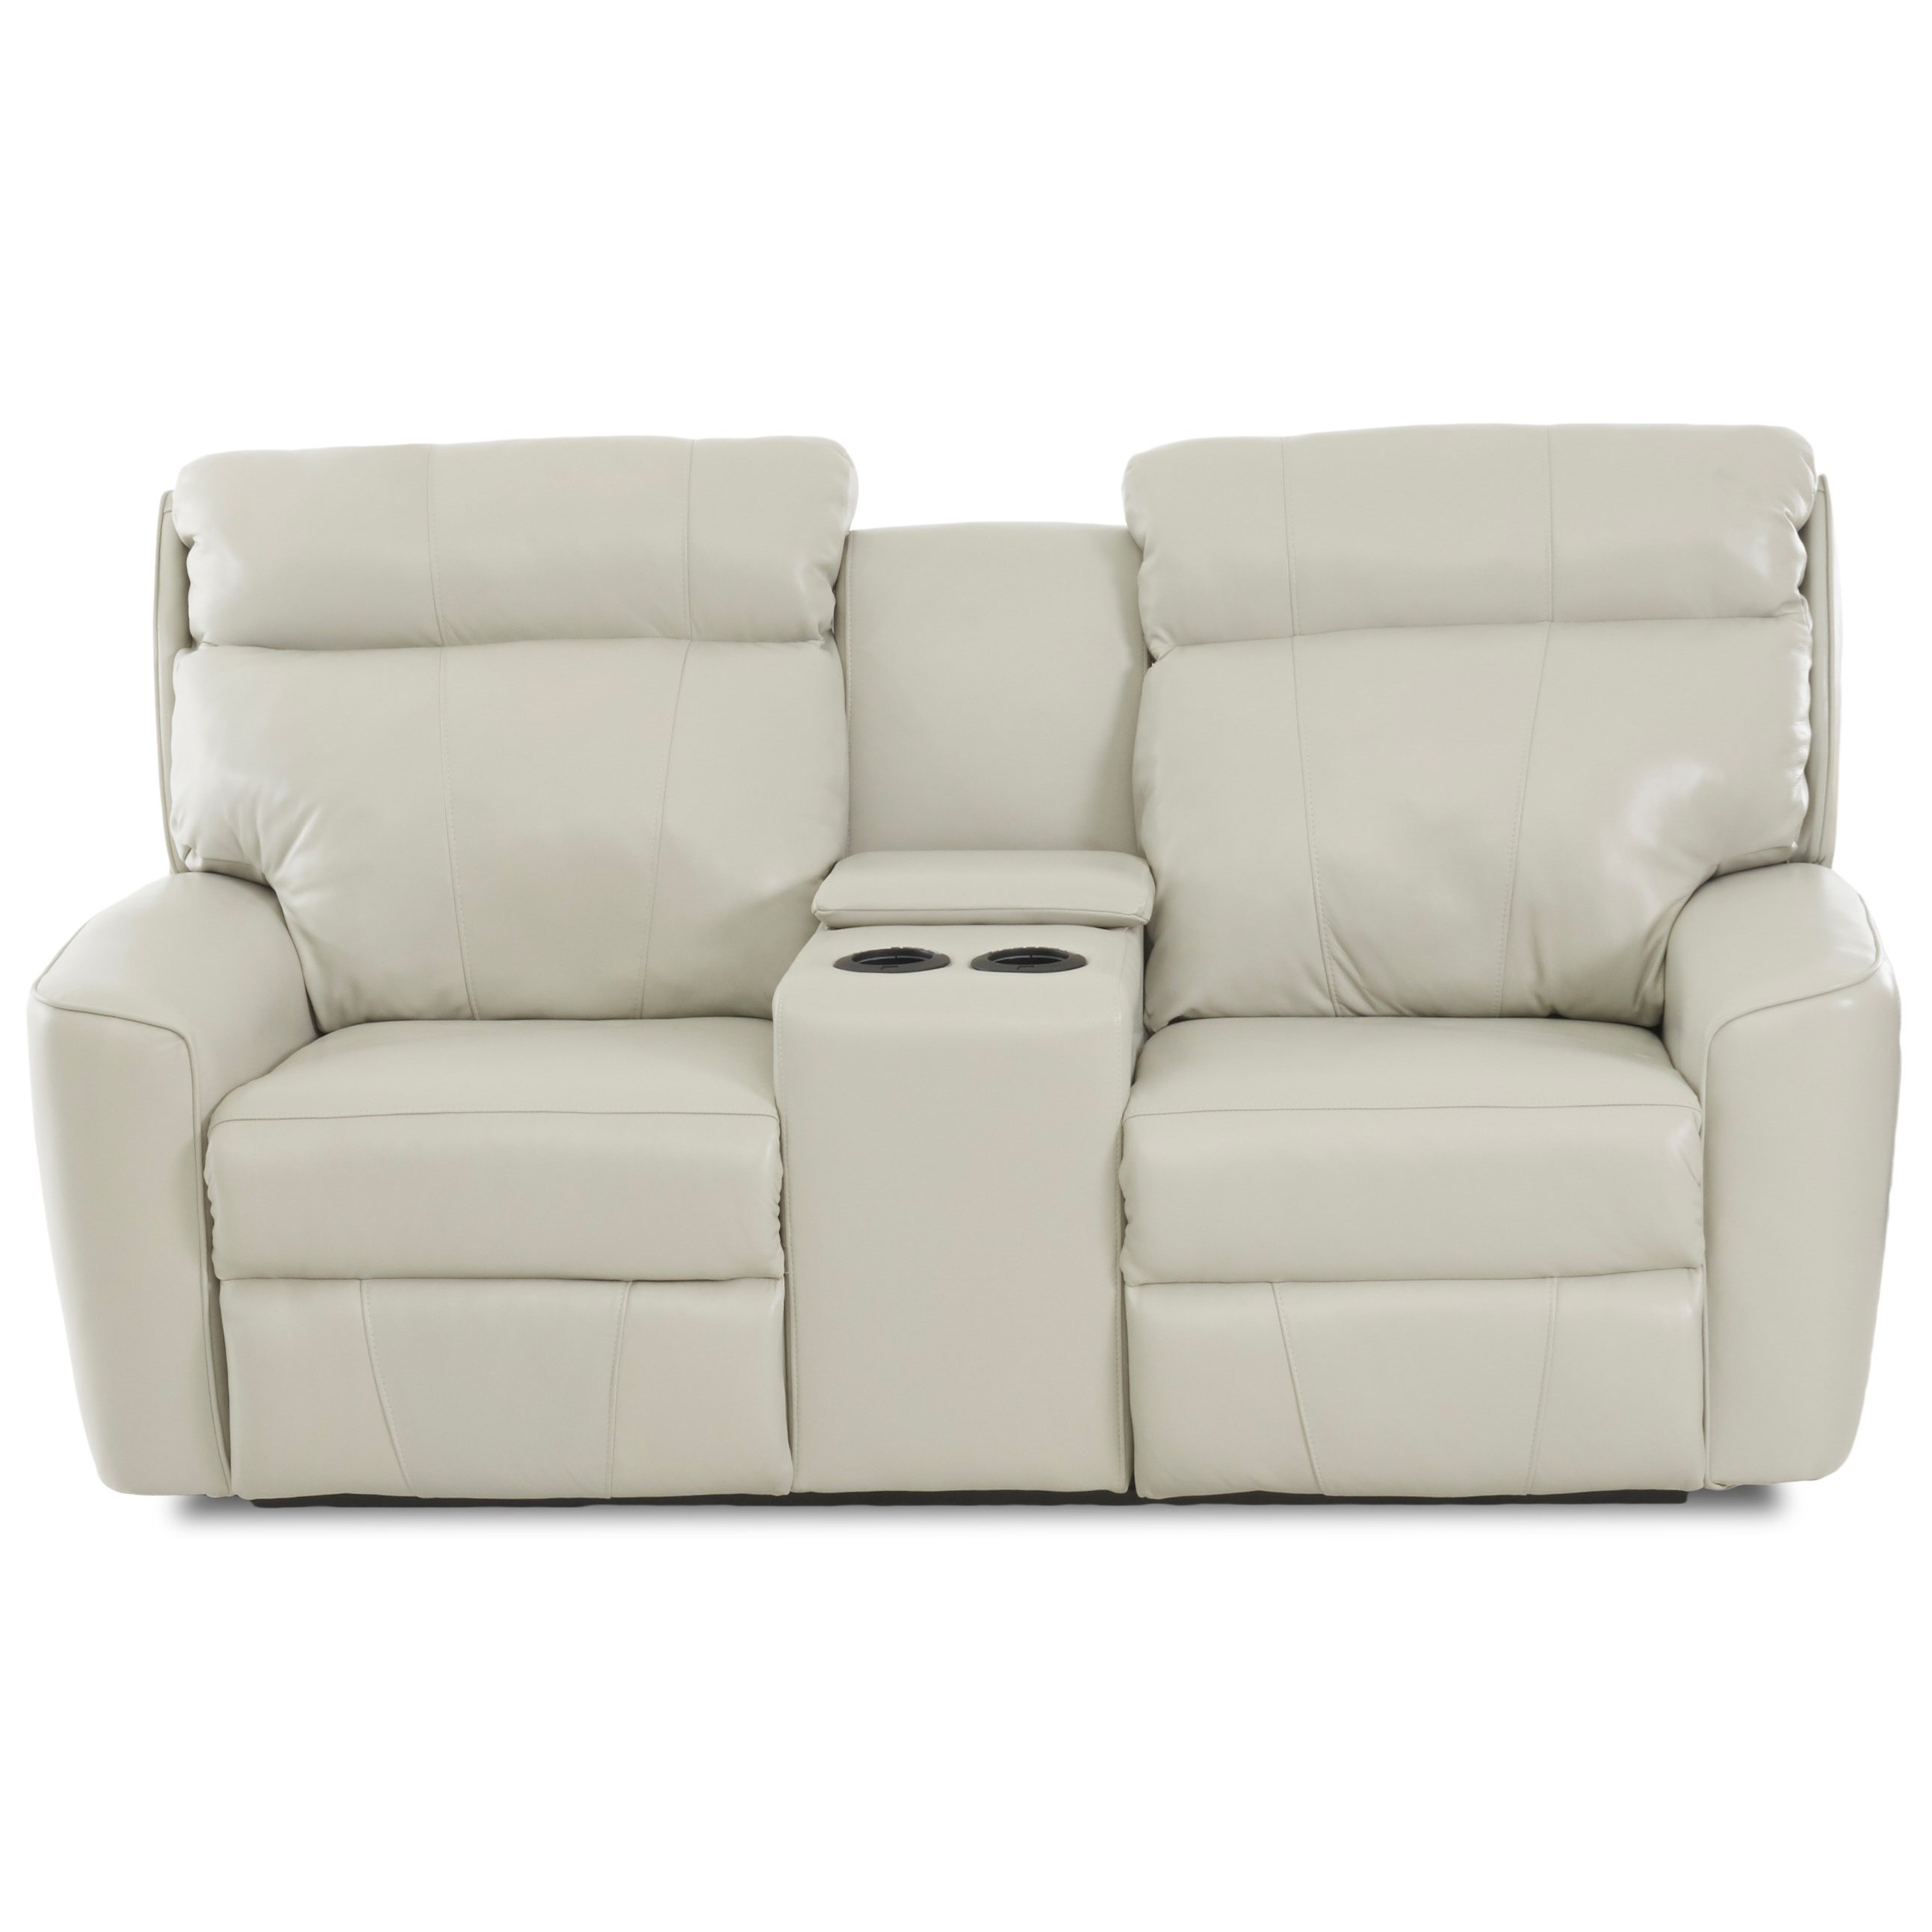 Fabulous Casual Power Reclining Console Loveseat With Usb Charging Bralicious Painted Fabric Chair Ideas Braliciousco